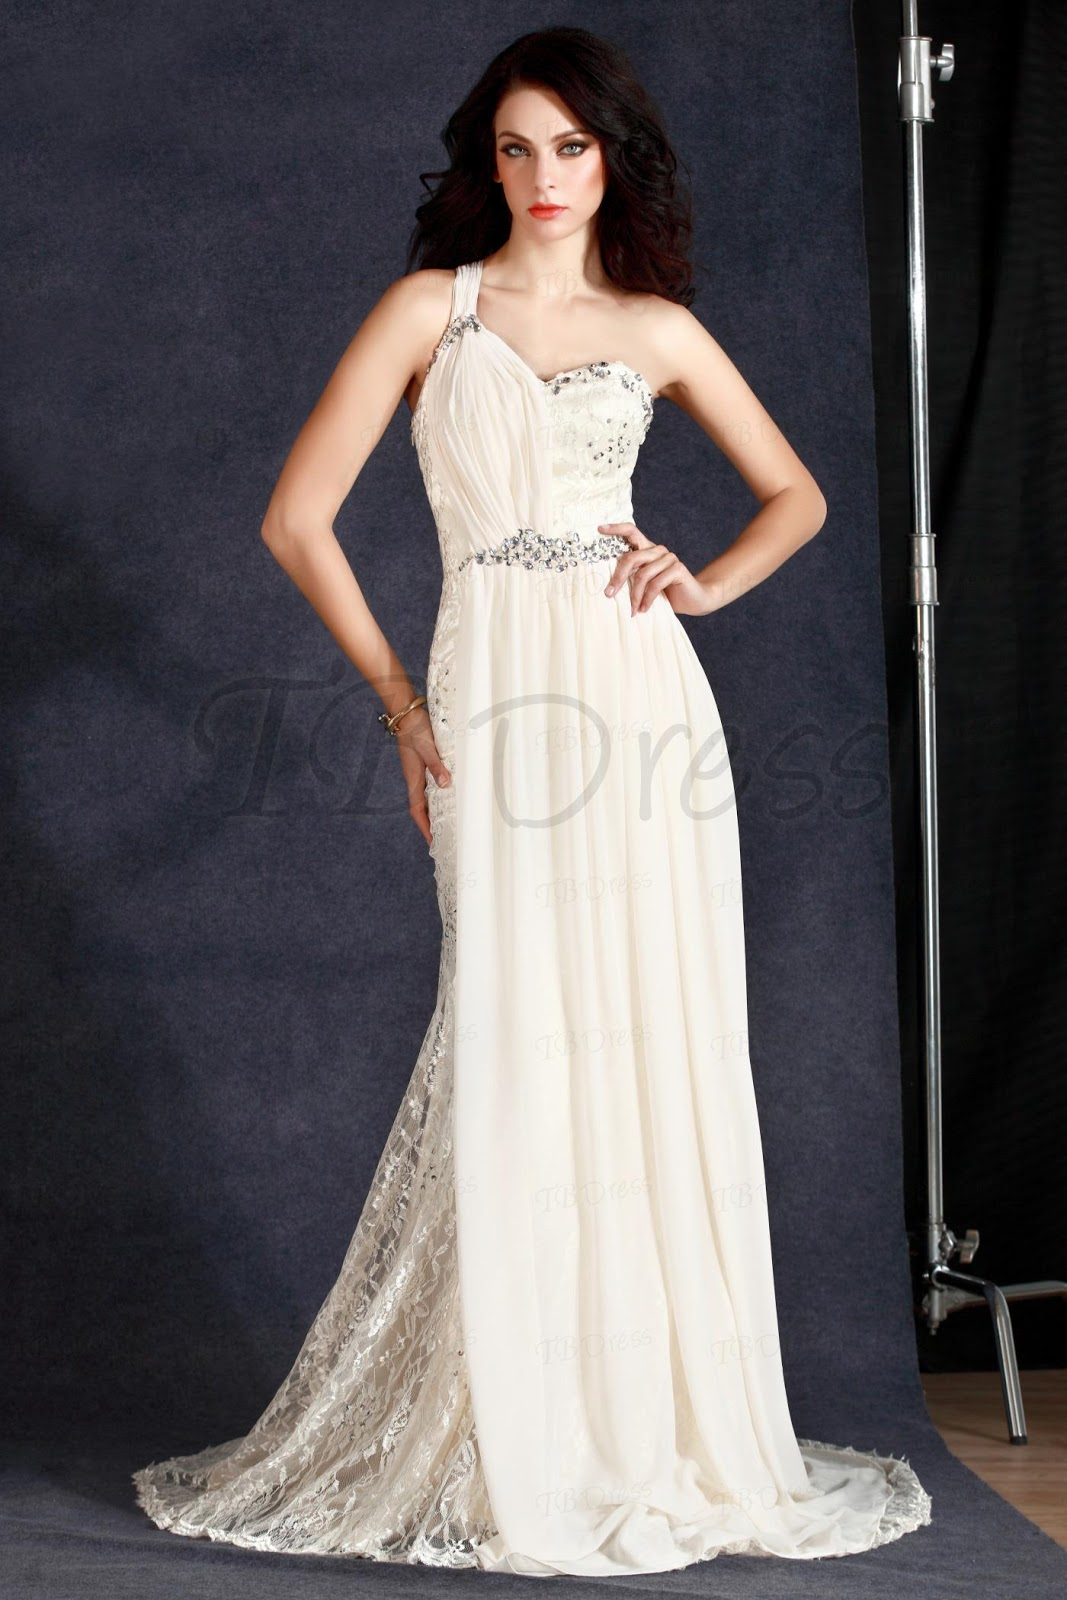 http://www.tbdress.com/product/Fashionable-A-Line-Floor-Length-One-Shoulder-Watteau-Train-Polinas-Evening-Dress-10161614.html